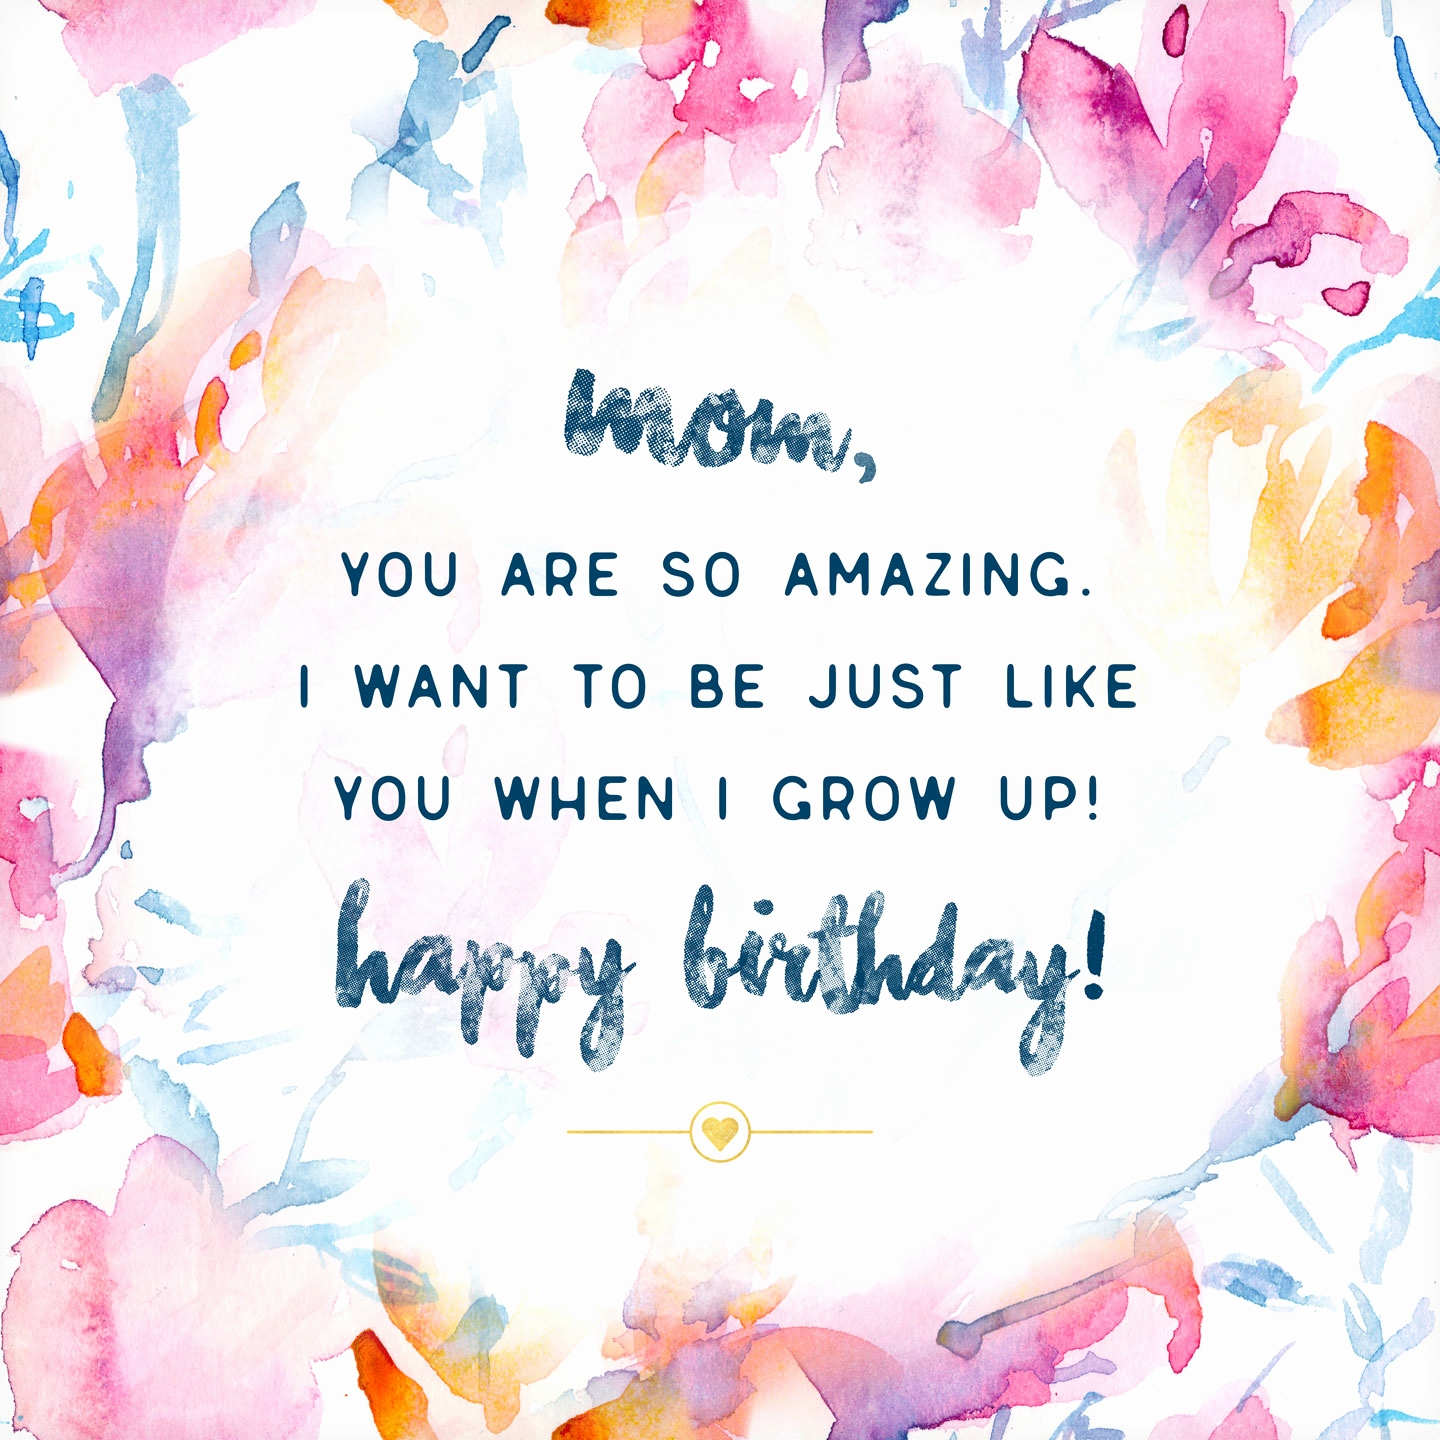 send birthday card by text message ; send-birthday-card-by-text-message-unique-what-to-write-in-a-birthday-card-48-birthday-messages-and-wishes-of-send-birthday-card-by-text-message